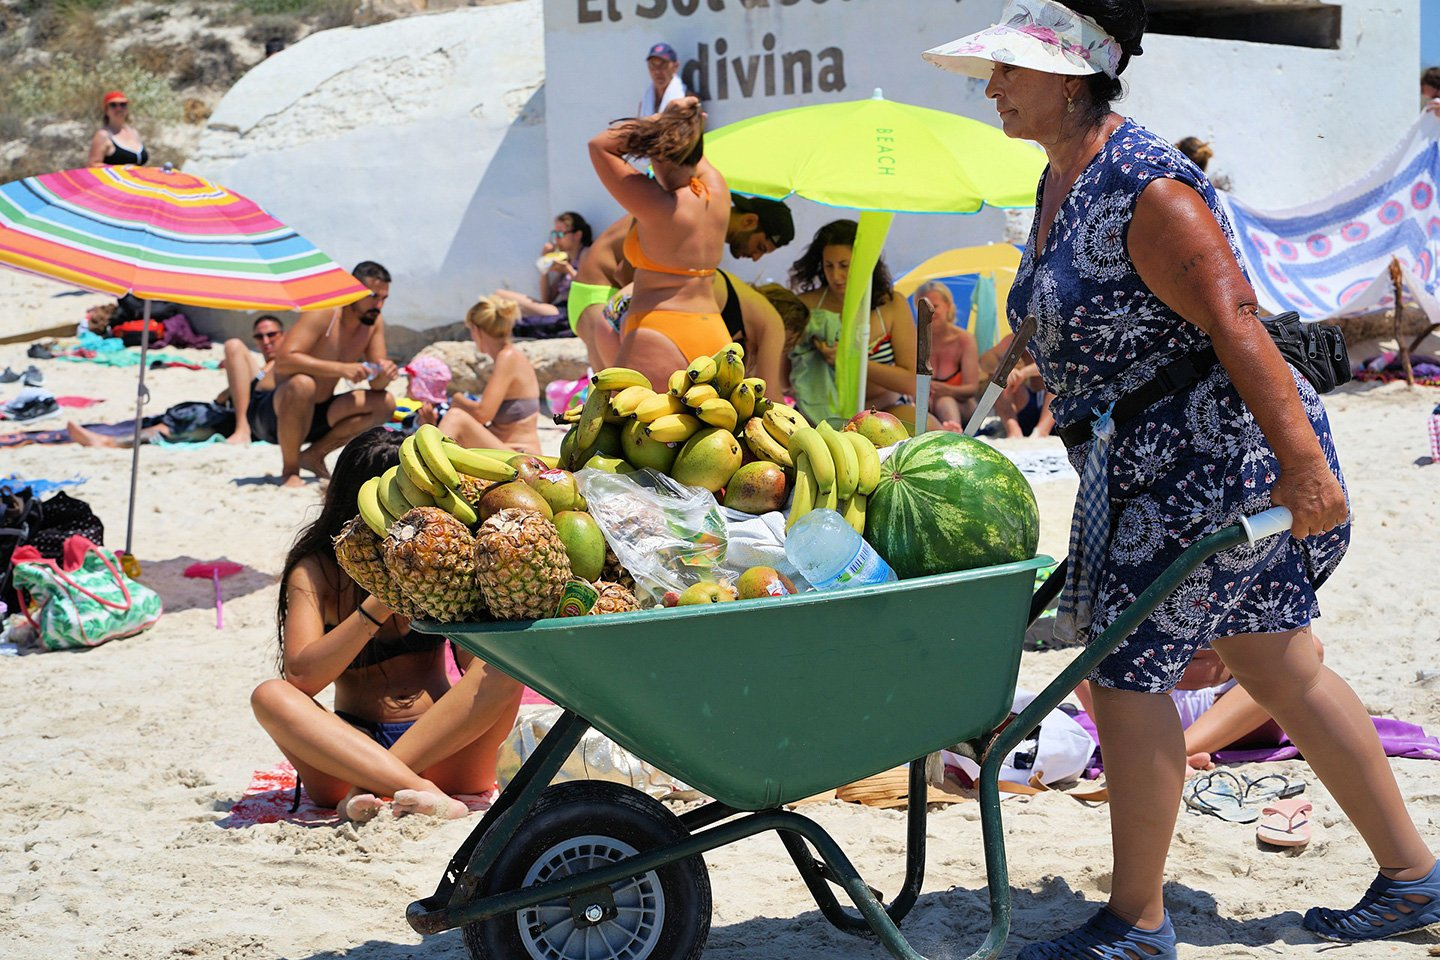 Lady selling fruit at the beach